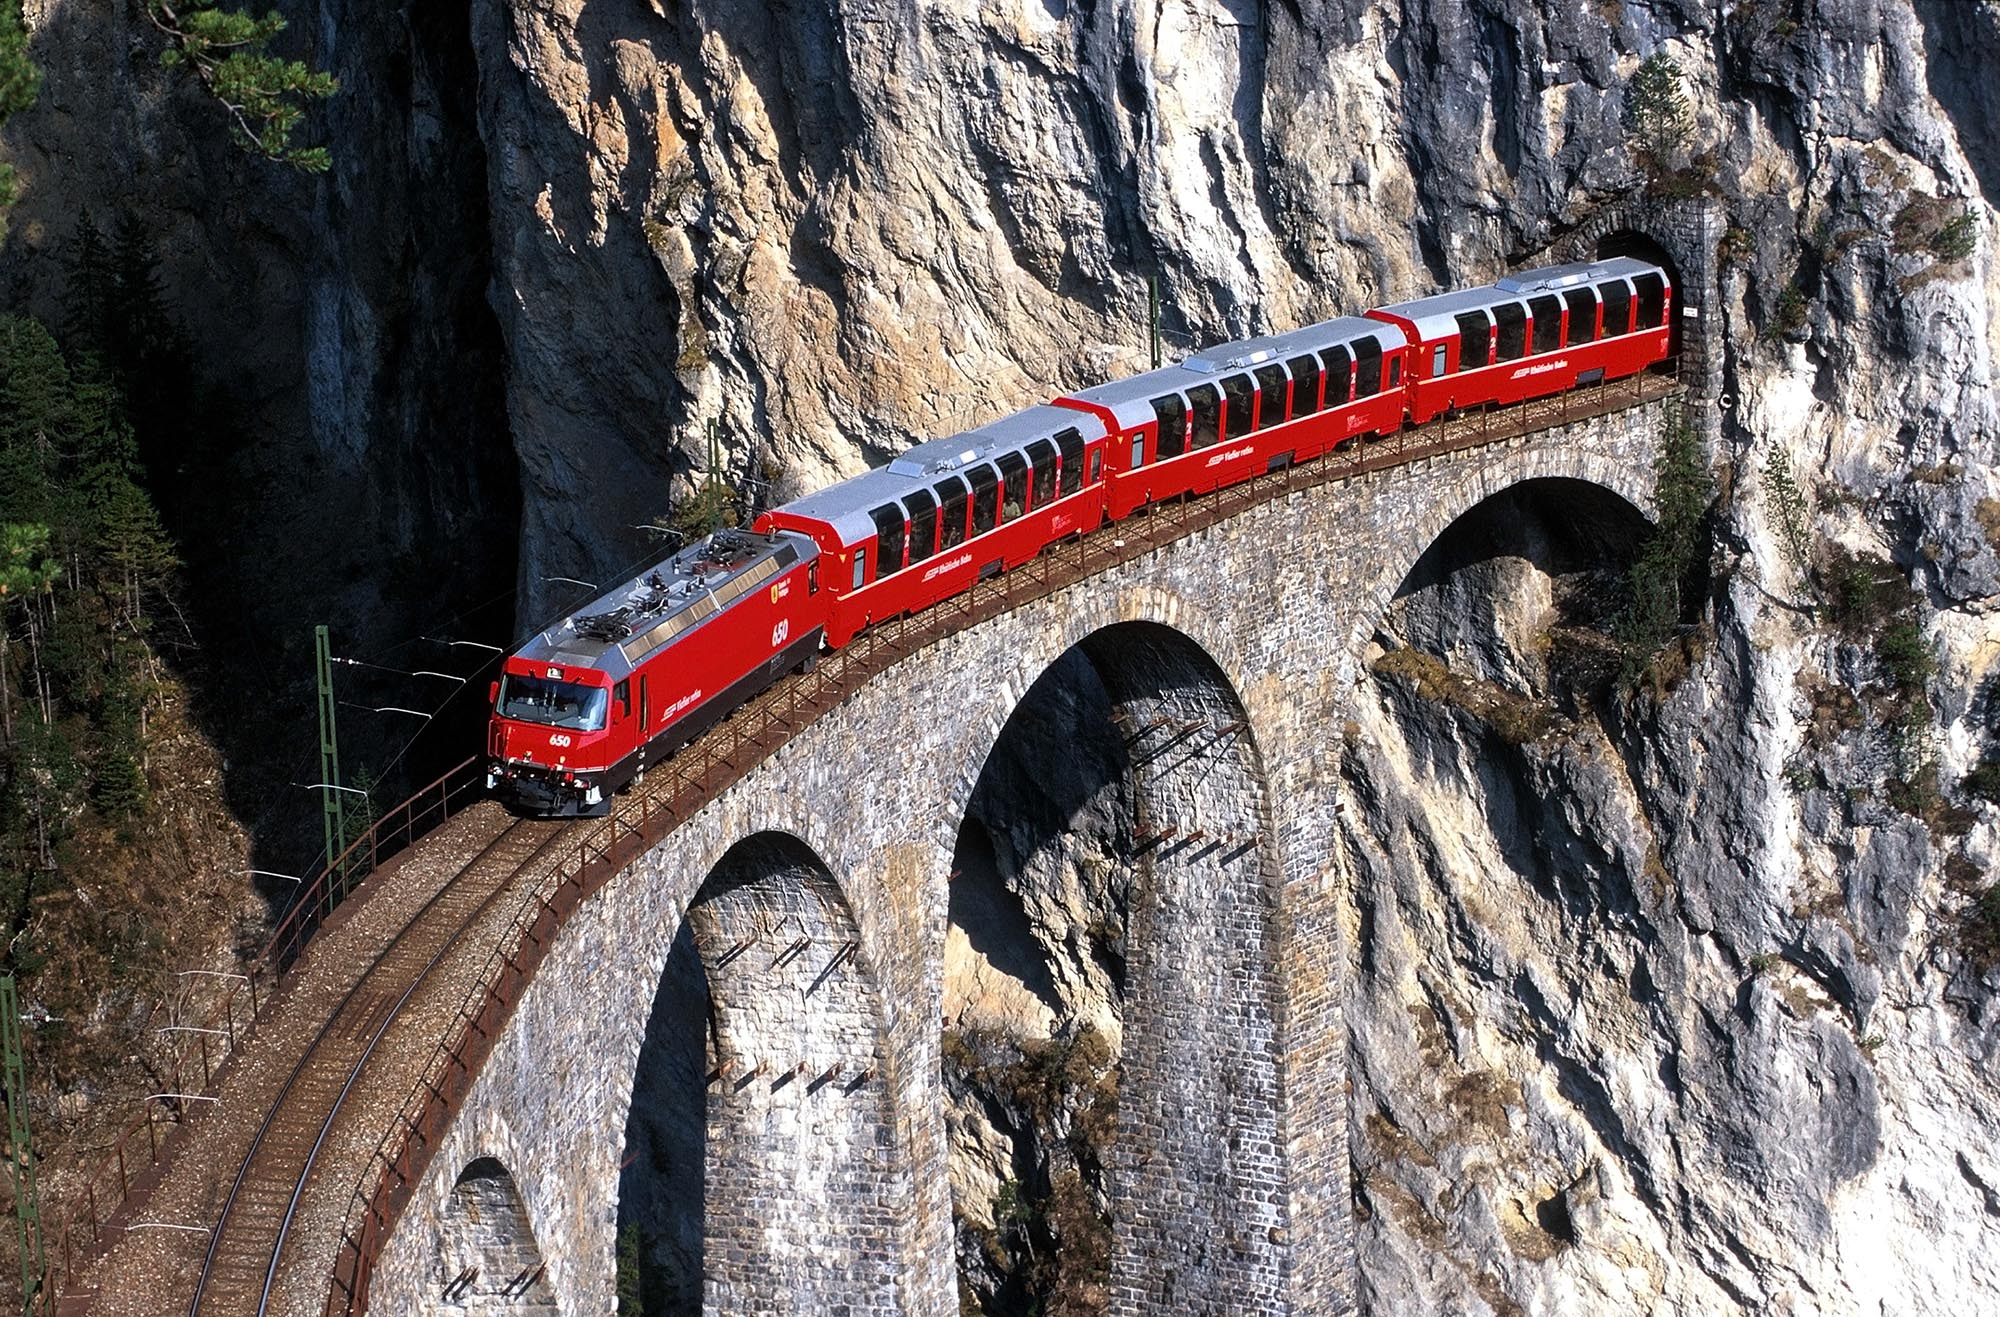 Bernina Express - Der Bernina Express ueberquert den weltbekannten Landwasserviadukt. Eine Fahrt von den Gletschern zu den Palmen. Bernina Express - The Bernina Express crosses the world-famous Landwasser Viaduct. Bernina Express - Il Bernina Express attraversa il celebre viadotto di Landwasser. Un viaggio dai ghiacciai alle palme. Copyright by Rhaetische Bahn By-line: swiss-image.ch/Peter Donatsch